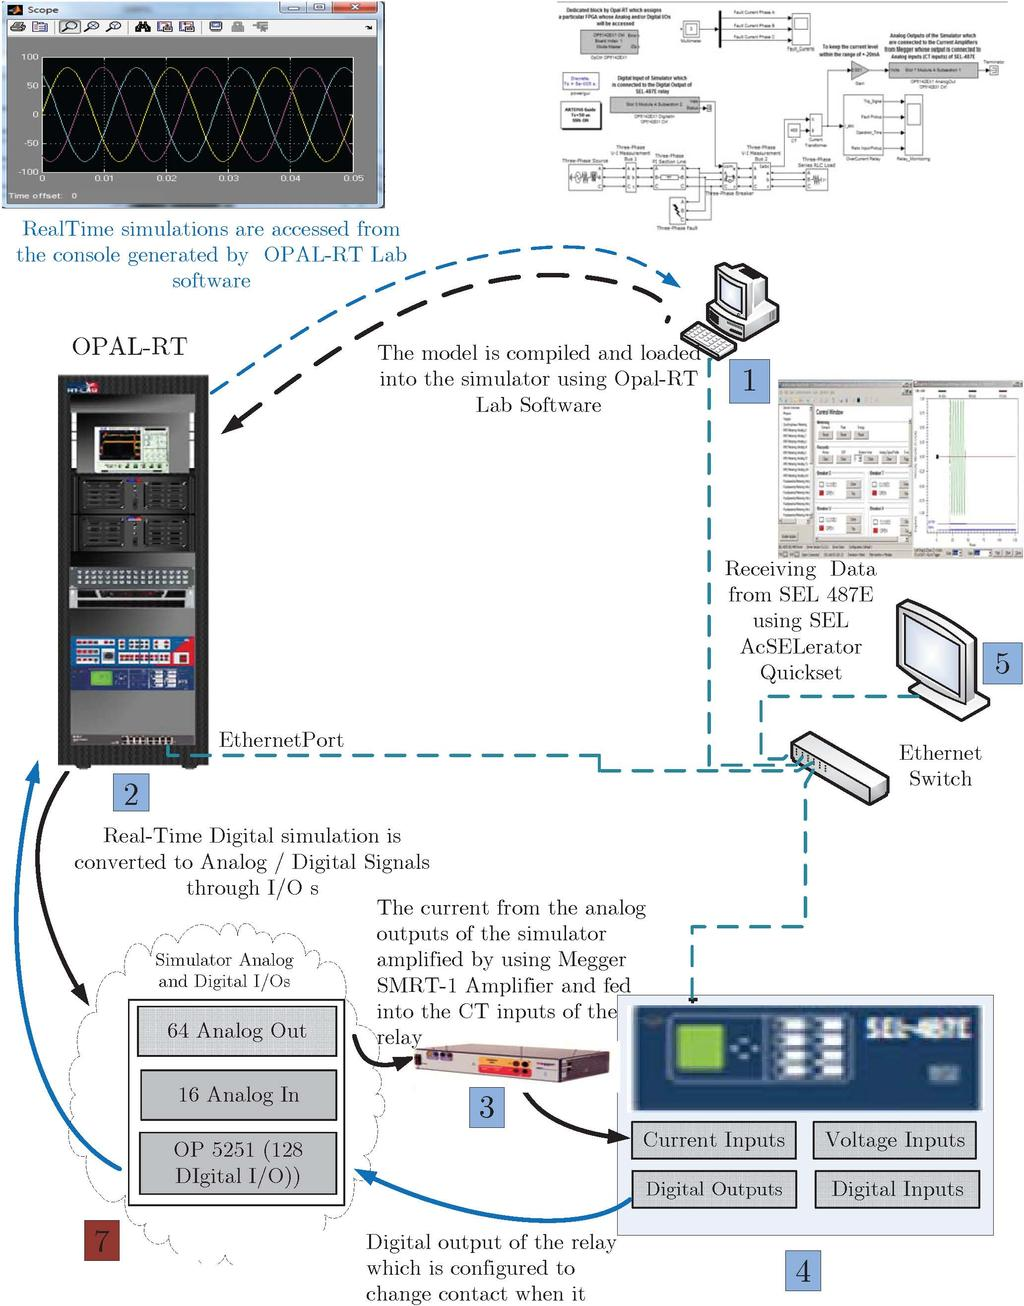 Over Current Relay Model Implementation For Real Time Simulation Operating Cev Iaua 75 50 Dvlegasim 2 Cores